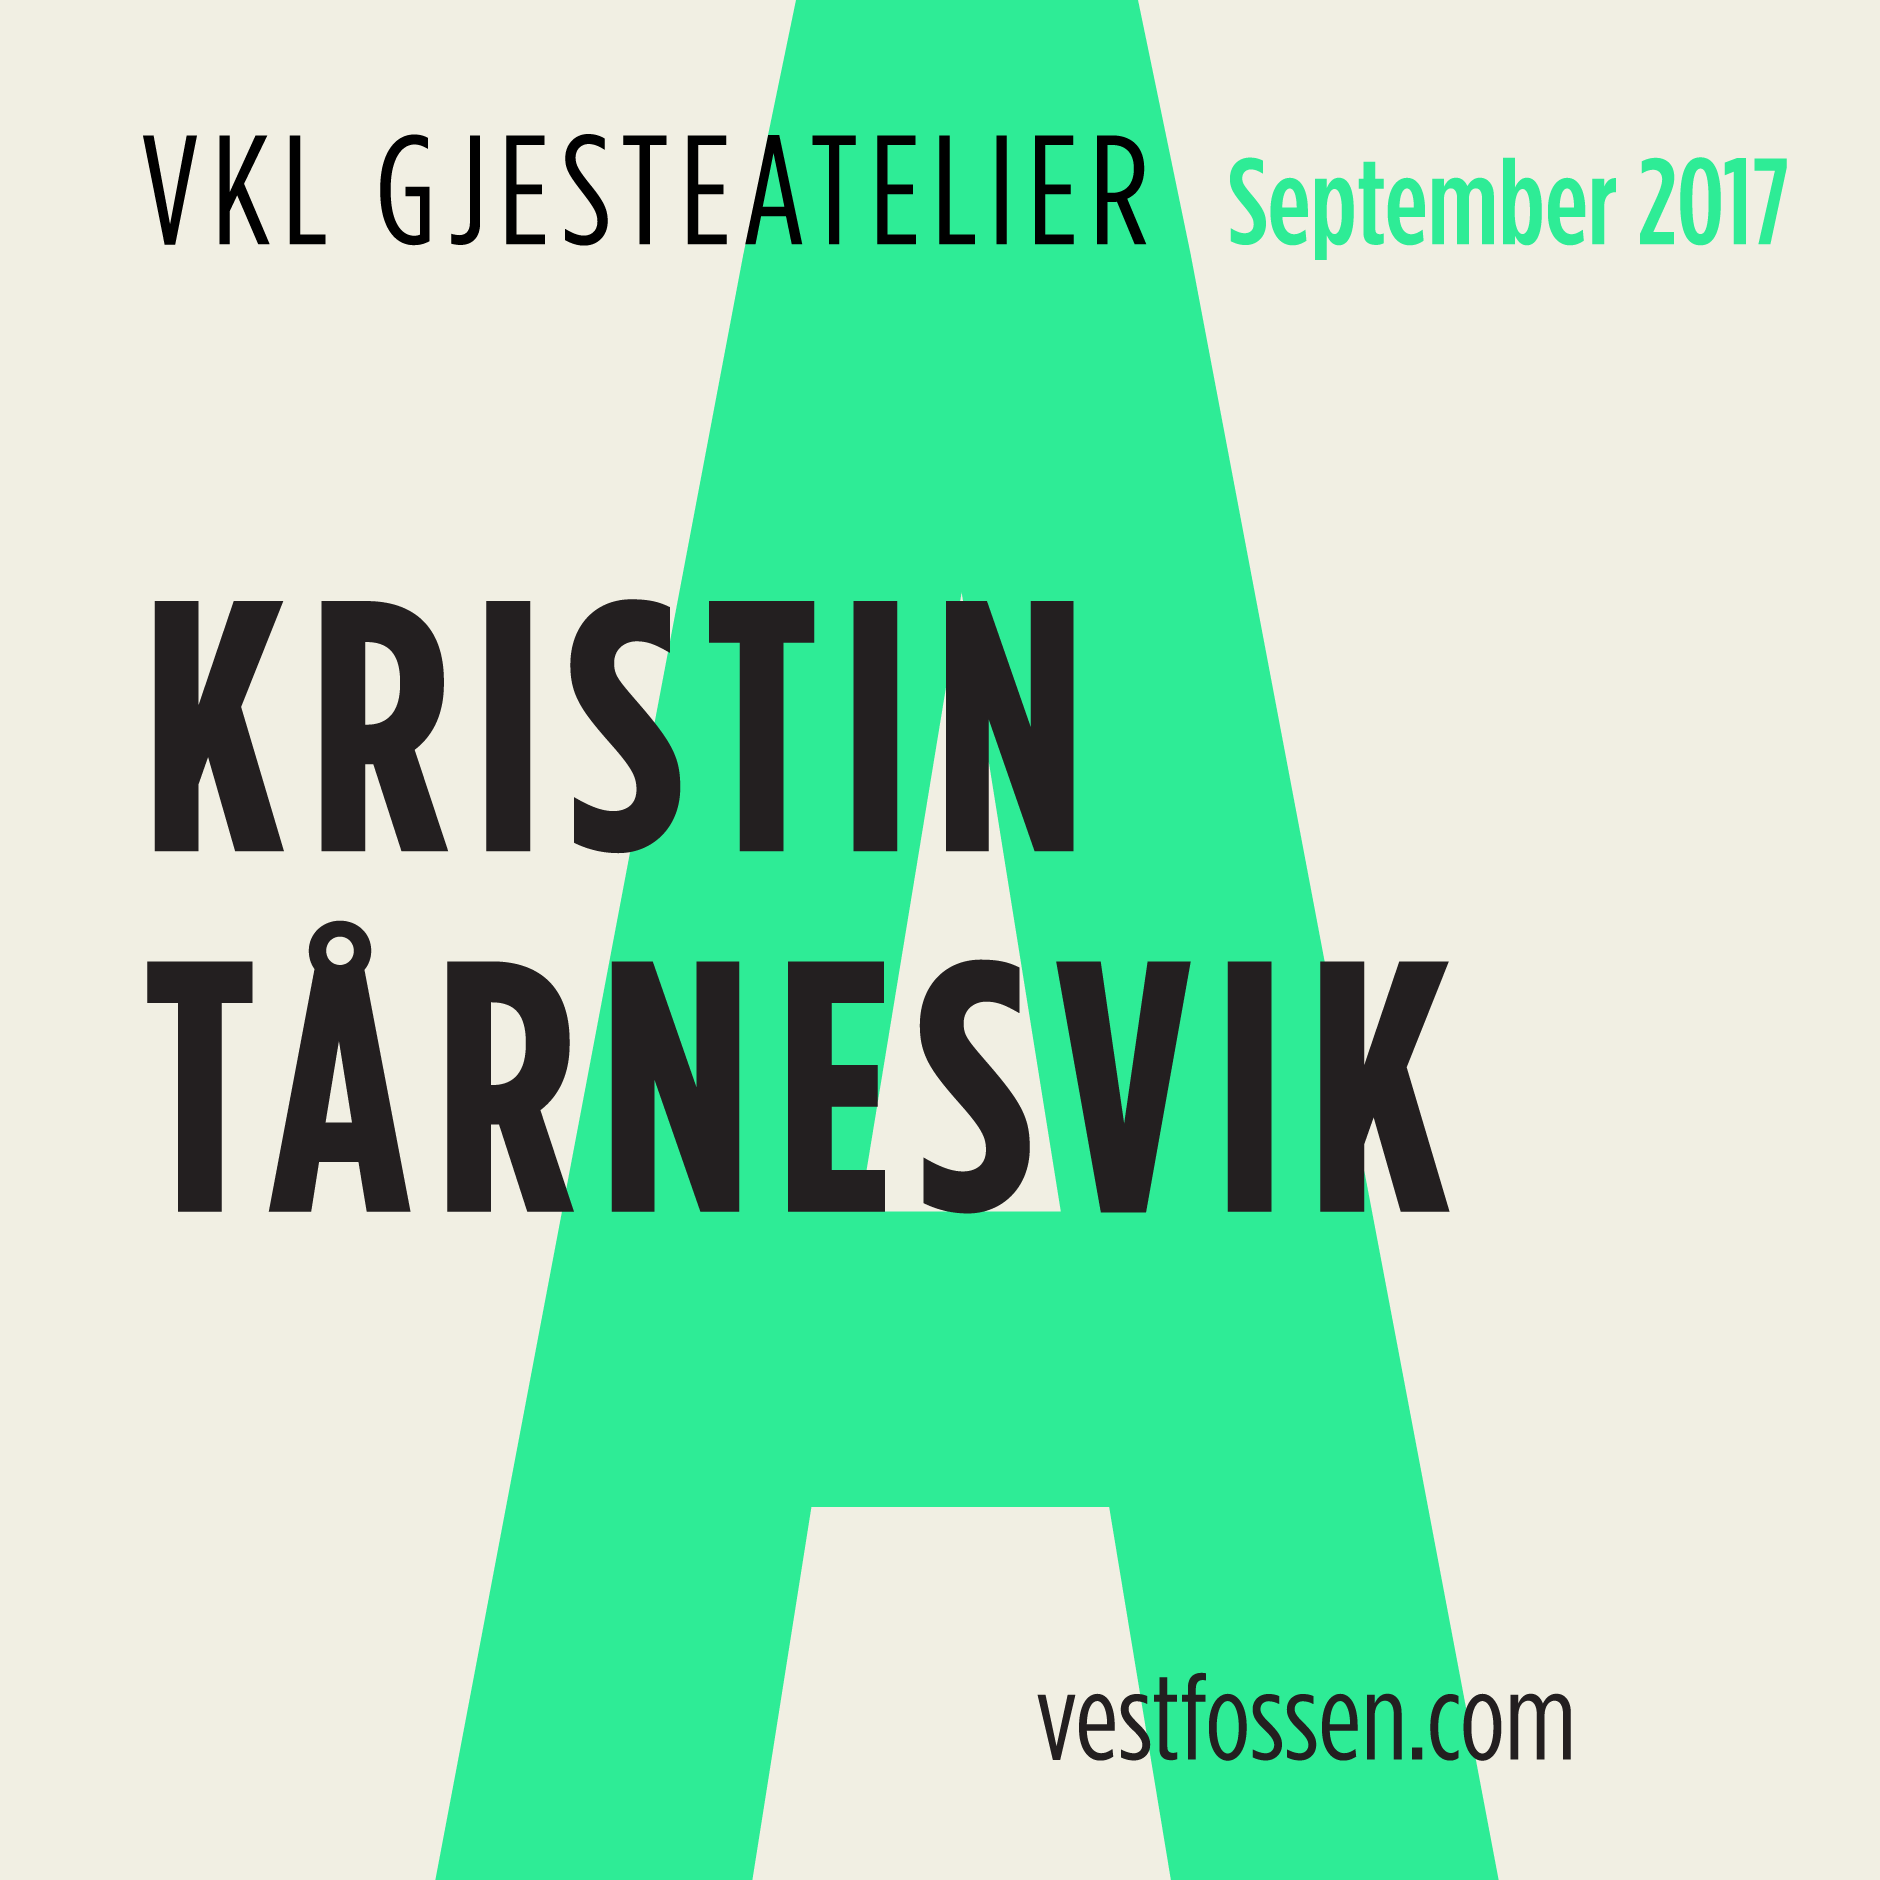 5 VKL Gjesteatelier 2017 september